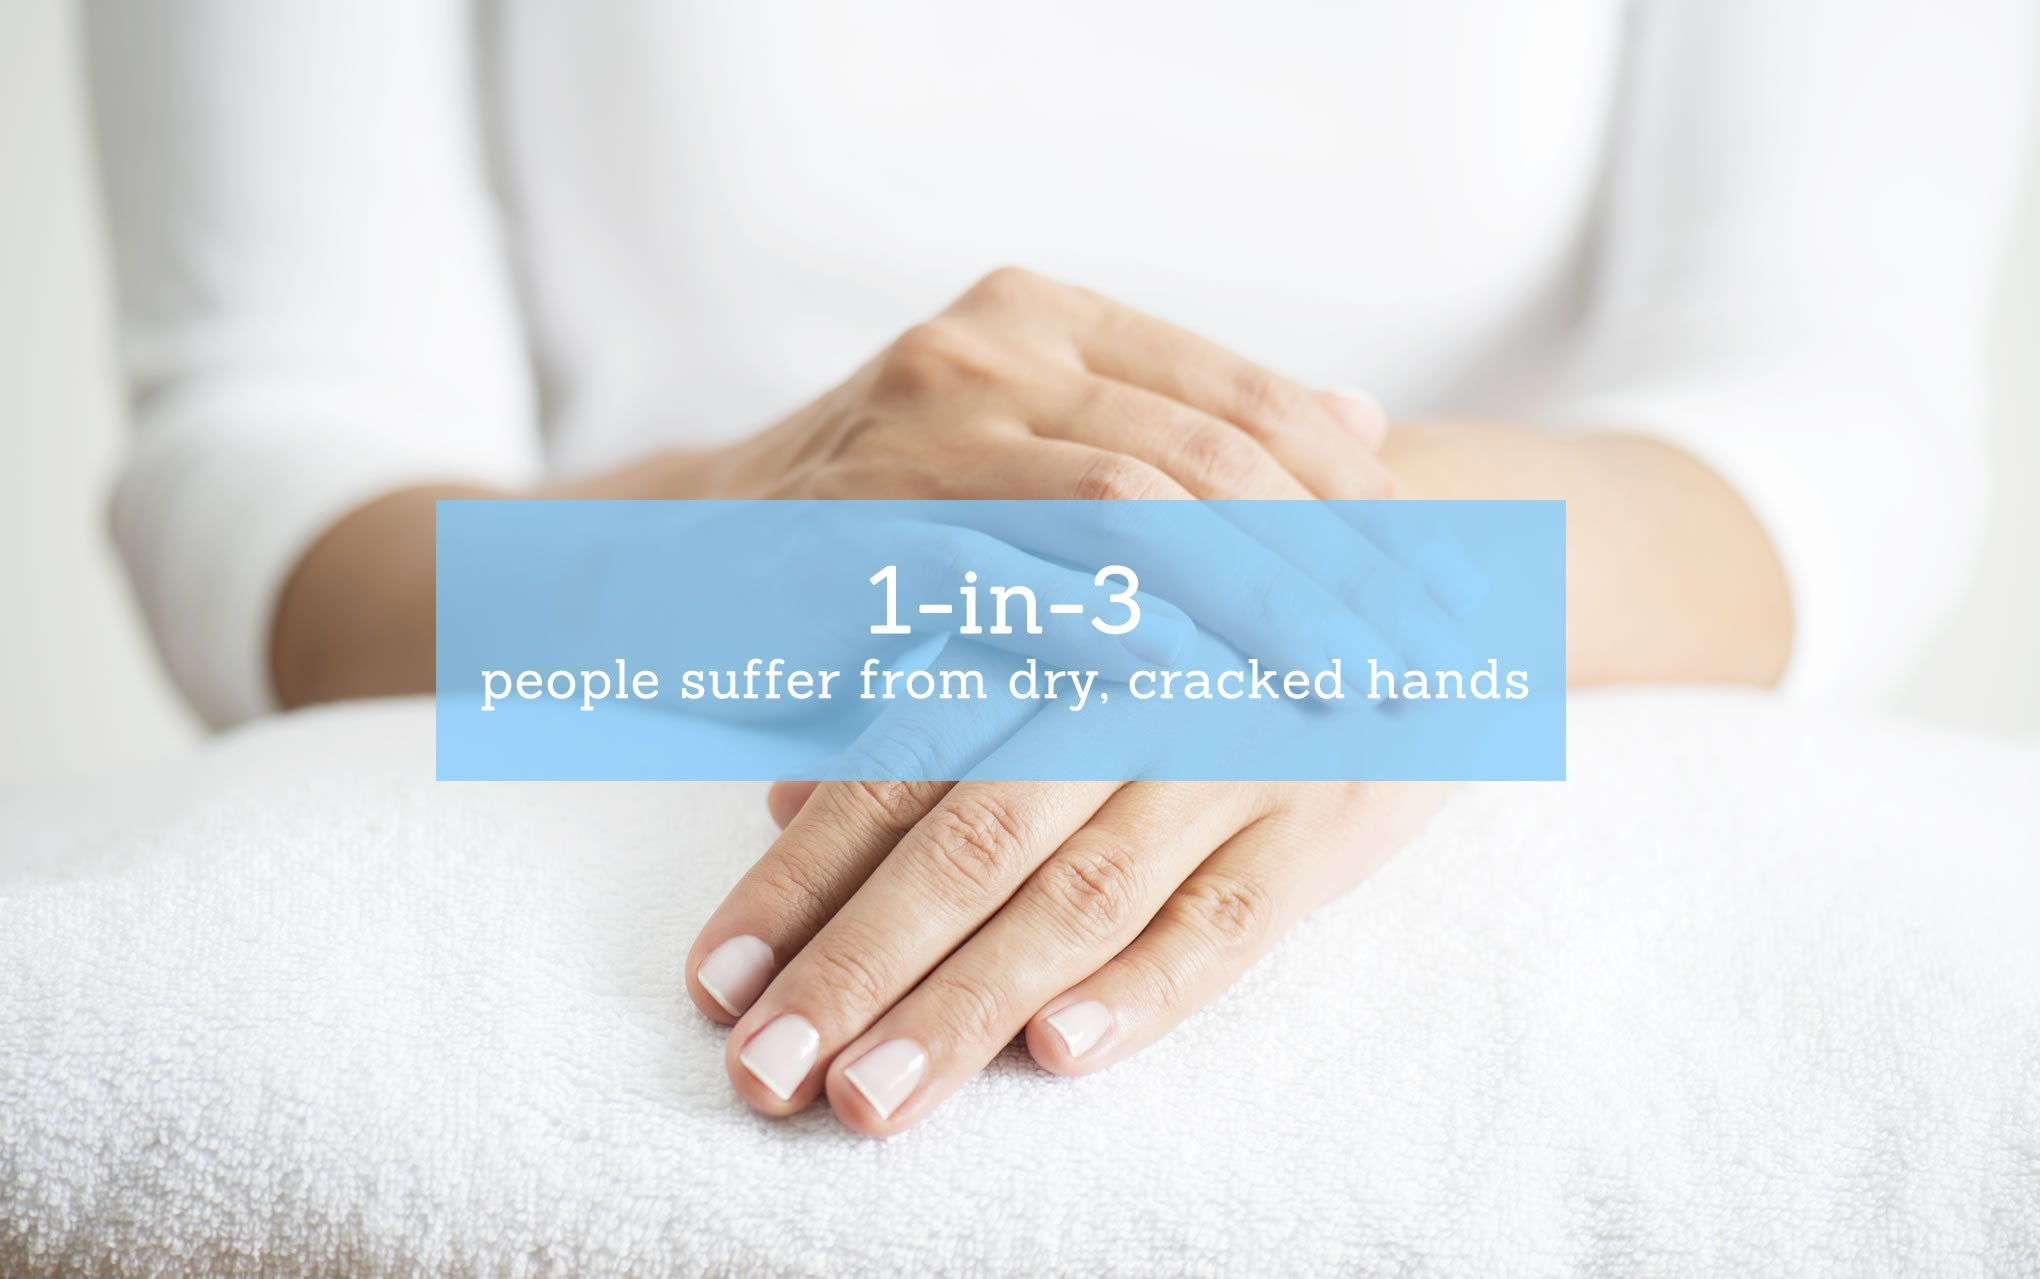 1 in 3 people suffer from dry, cracked hands.